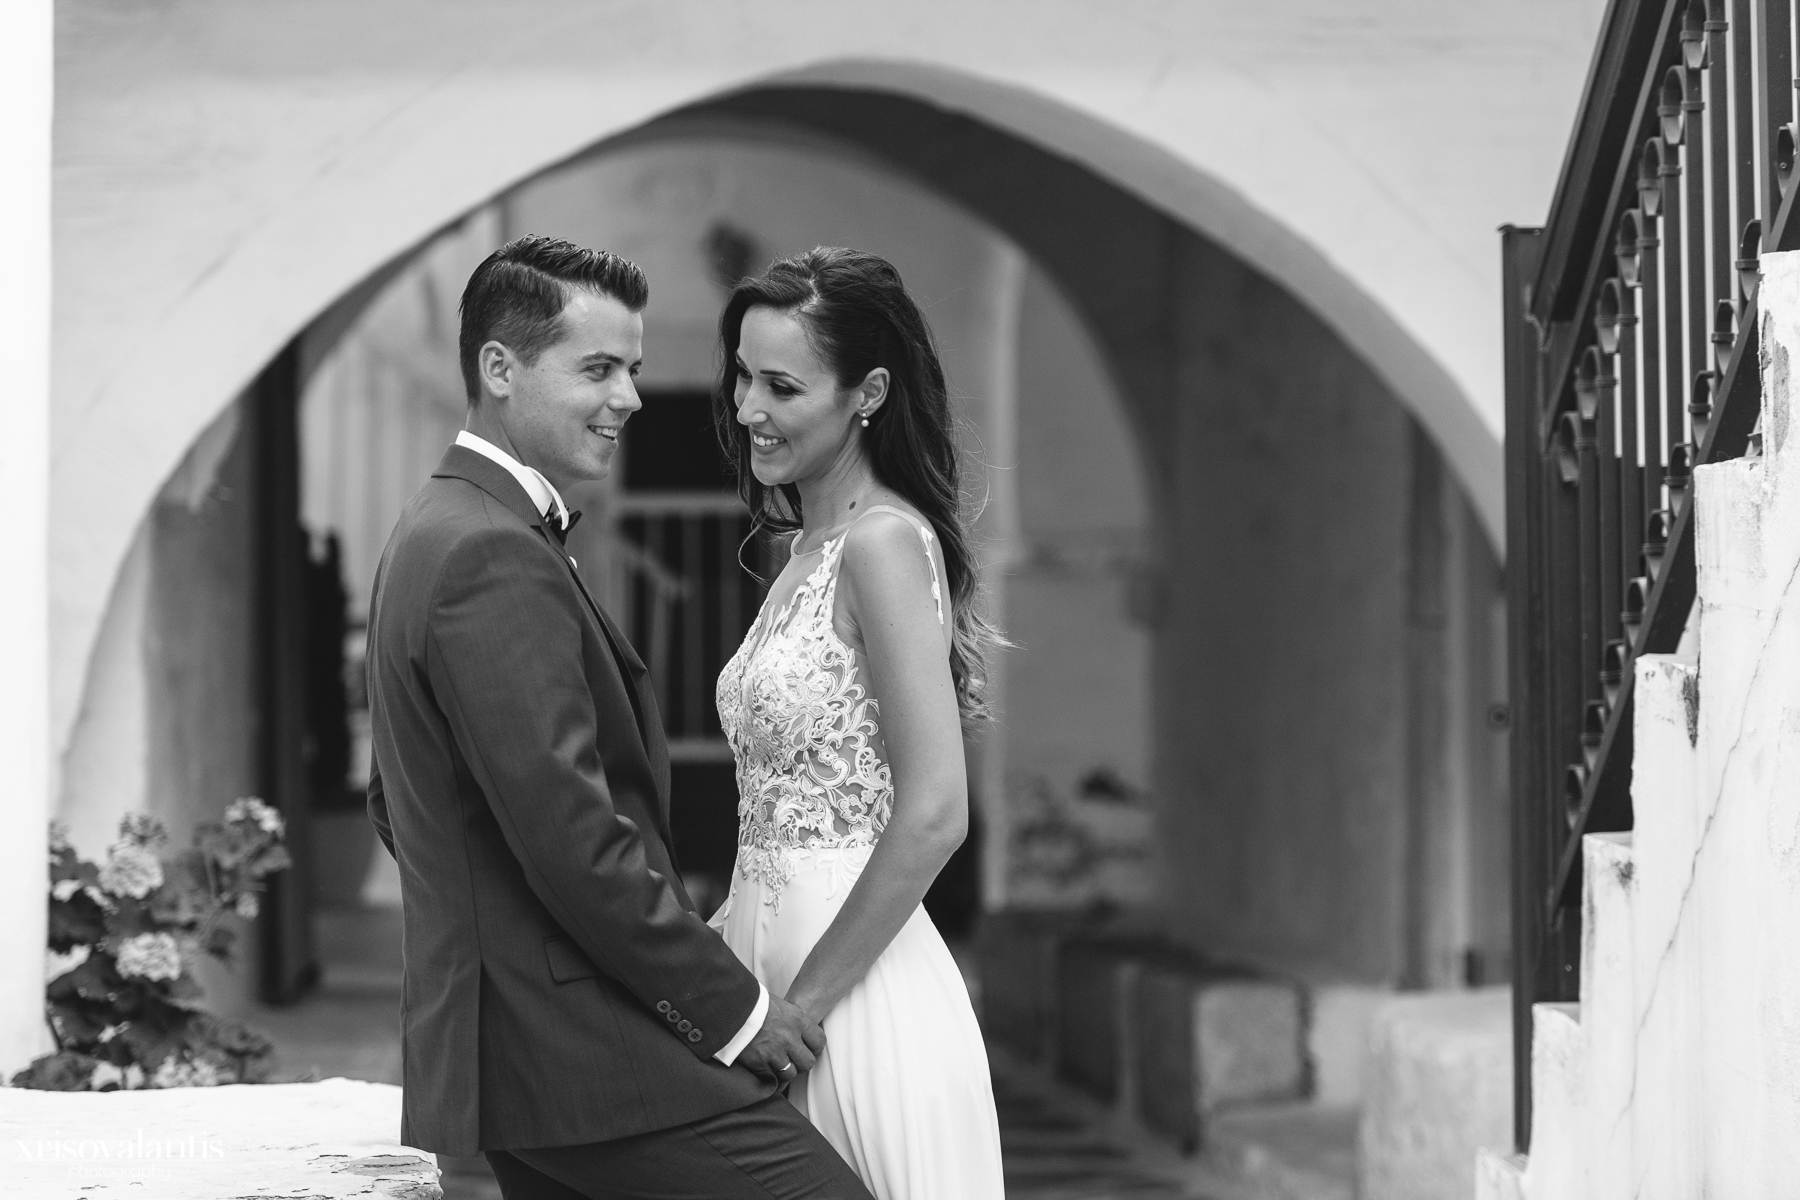 paros-wedding-photography-simeonidis-xri